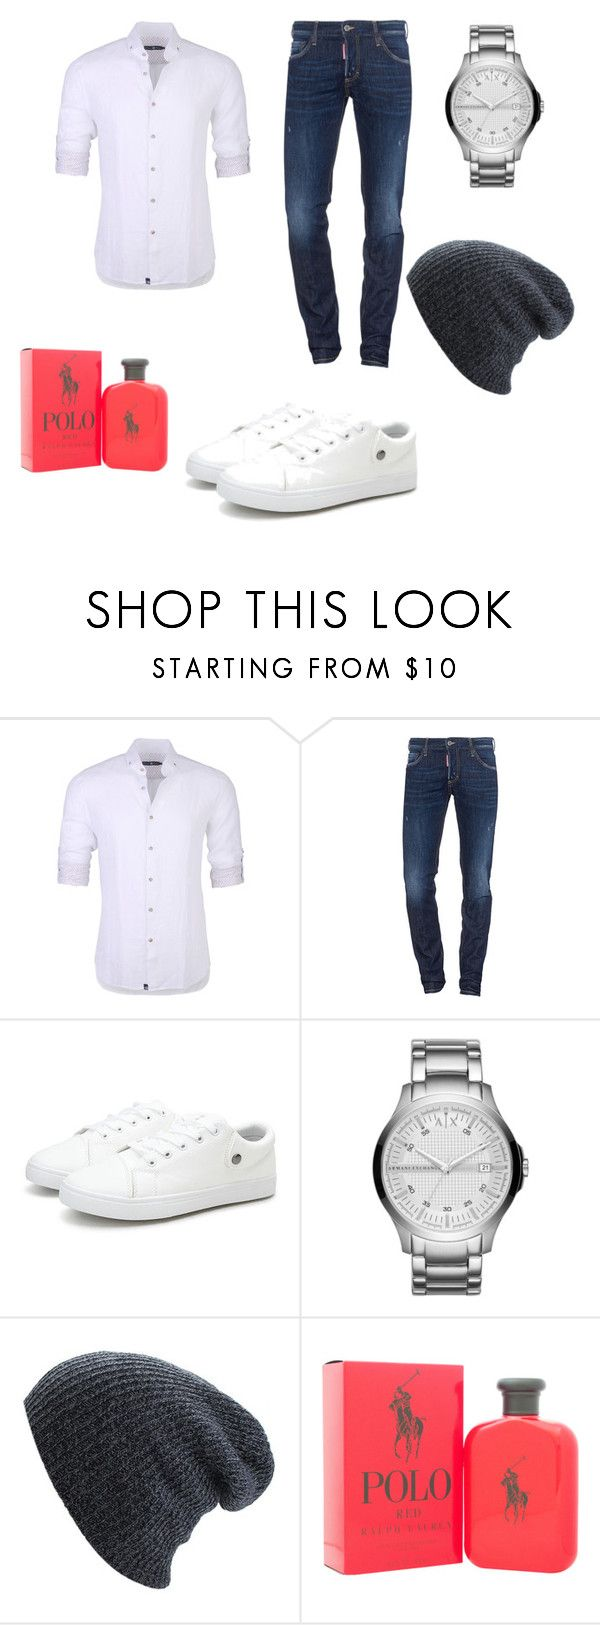 """""""so hot"""" by cleopatrameow ❤ liked on Polyvore featuring Stone Rose, Dsquared2, Armani Exchange, Ralph Lauren, men's fashion and menswear"""